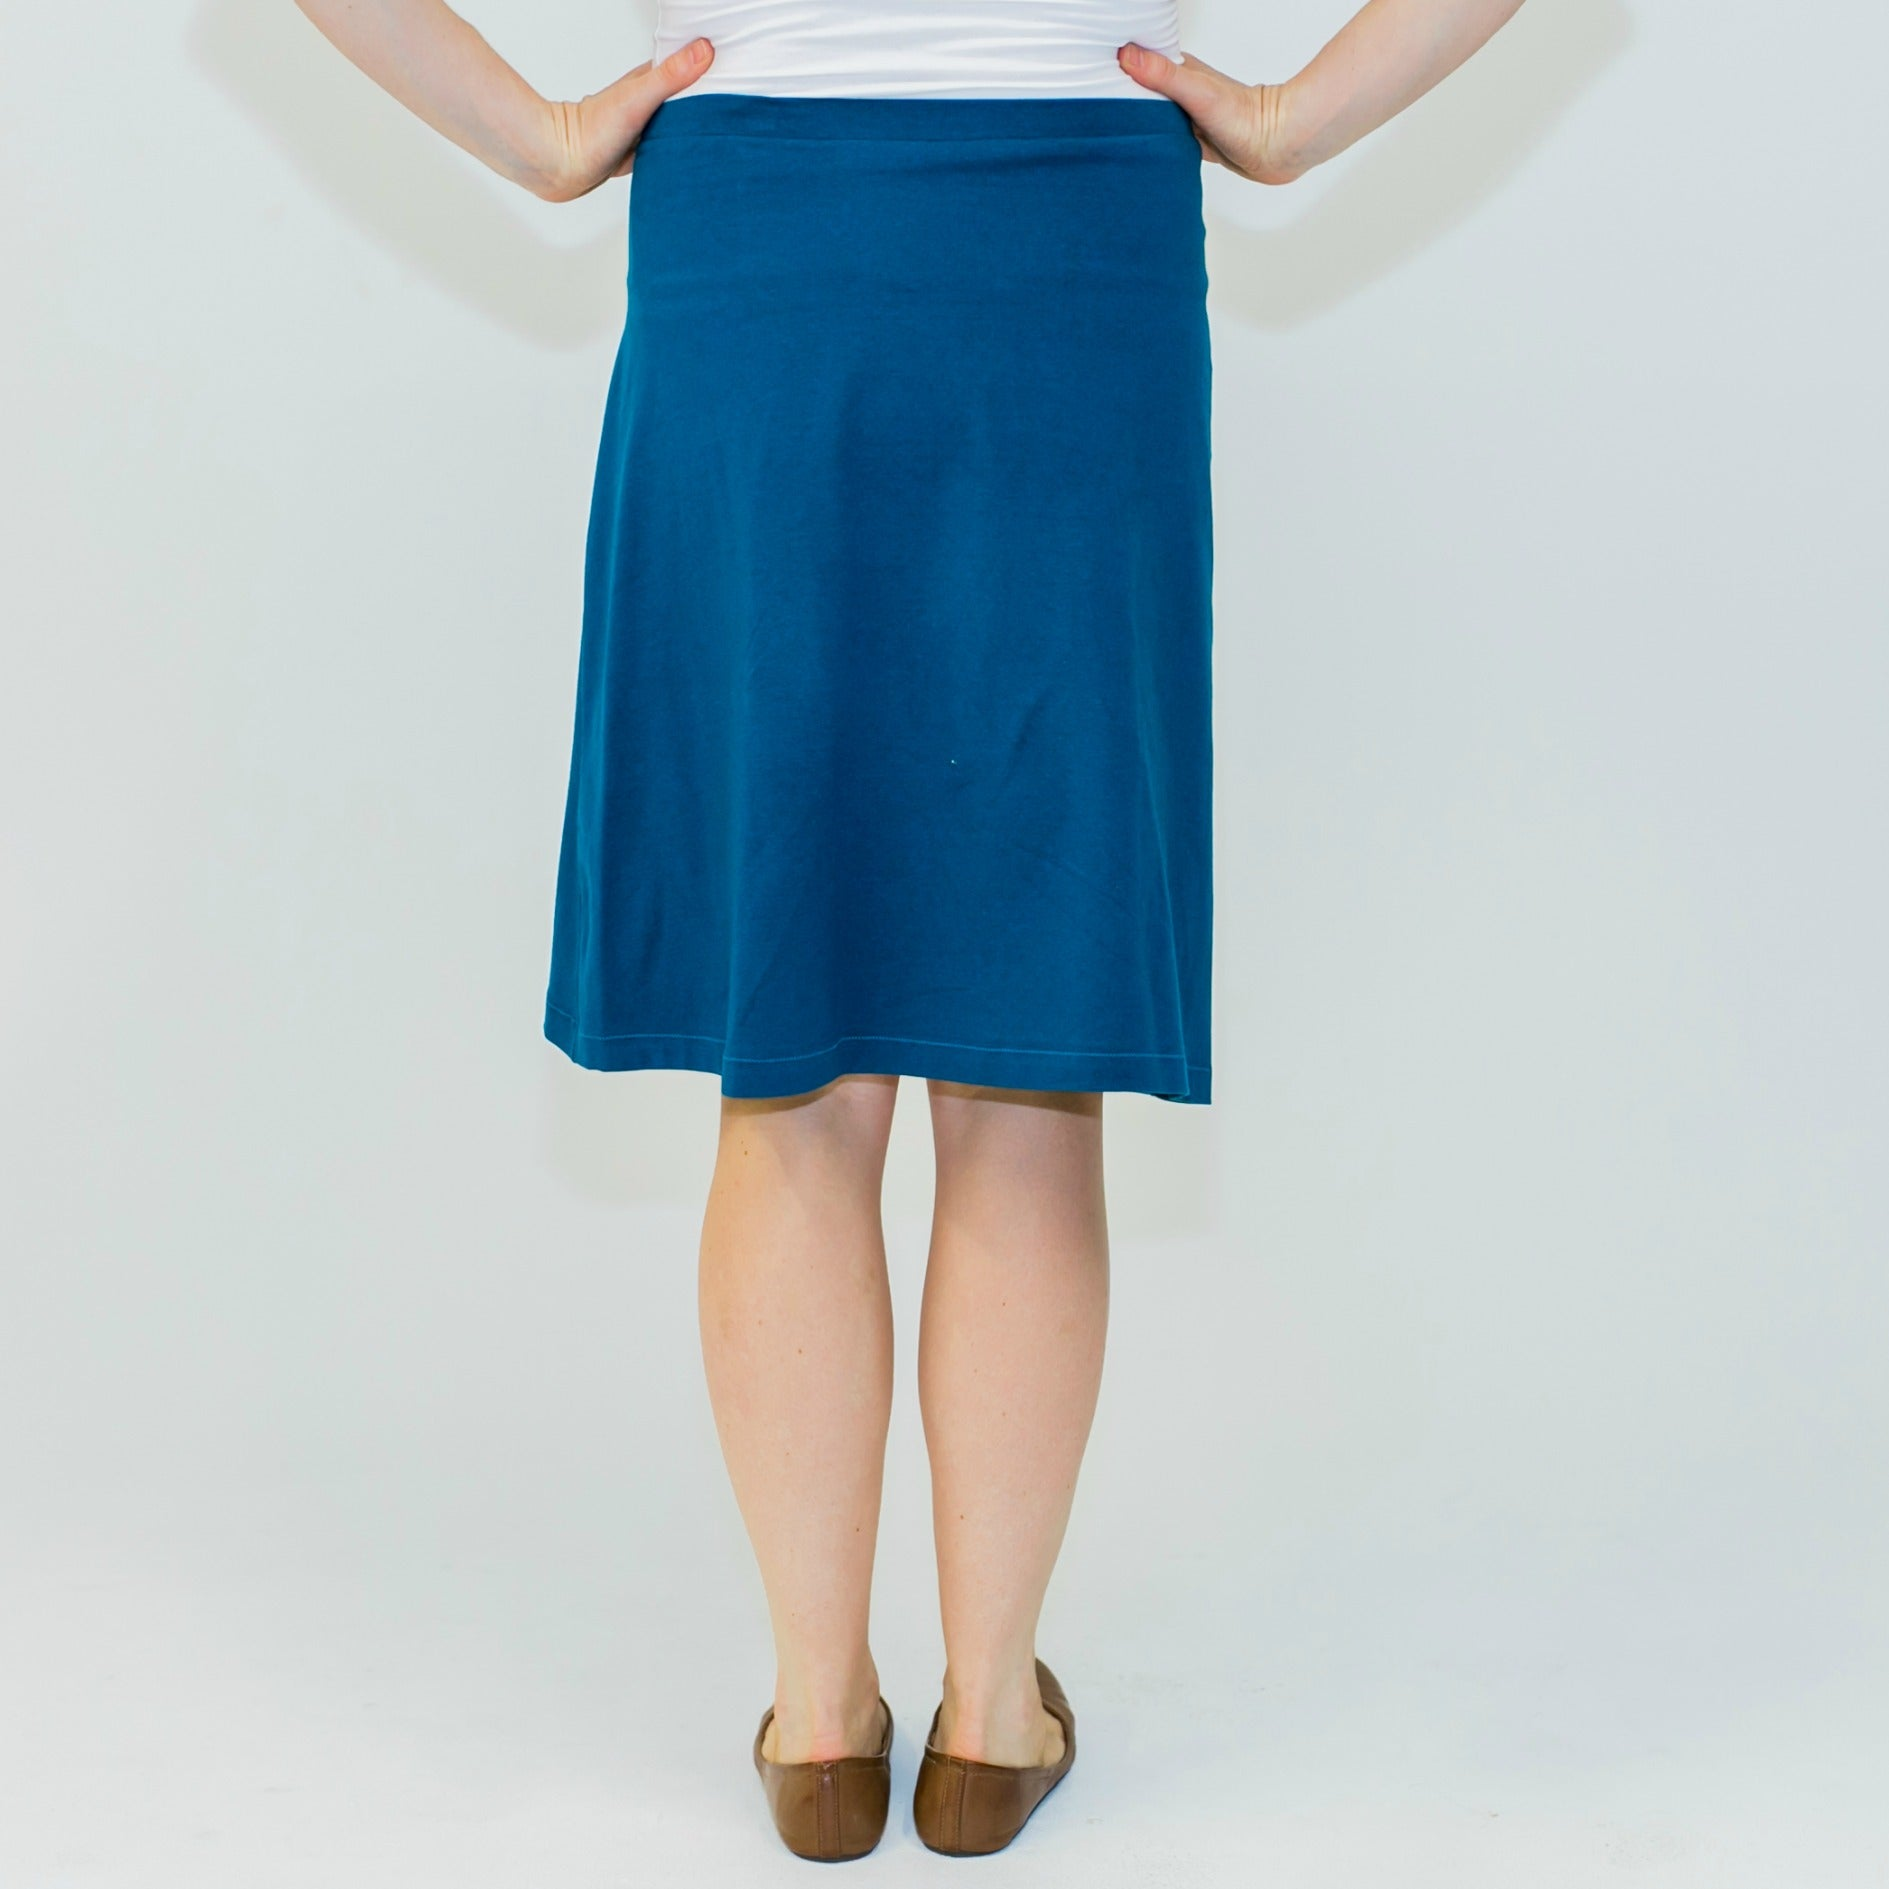 Triangle Swing Midi Skirt - Teal